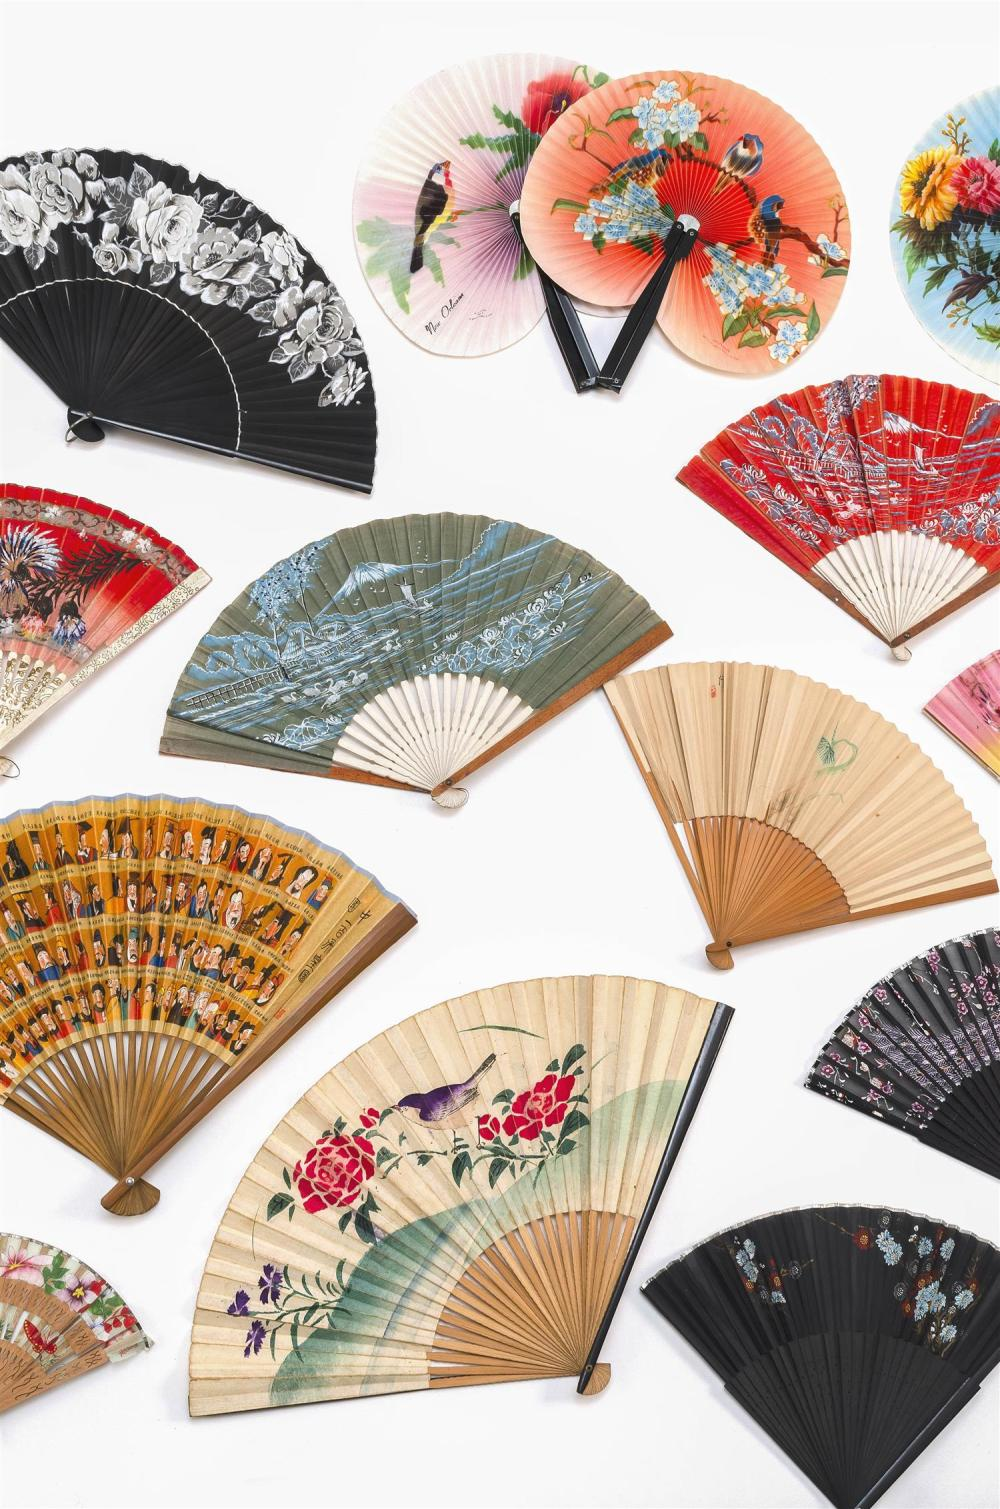 TWENTY-SIX ASIAN FANS 1-7) Seven Chinese metal and paper cockade fans. Lengths closed 5.5